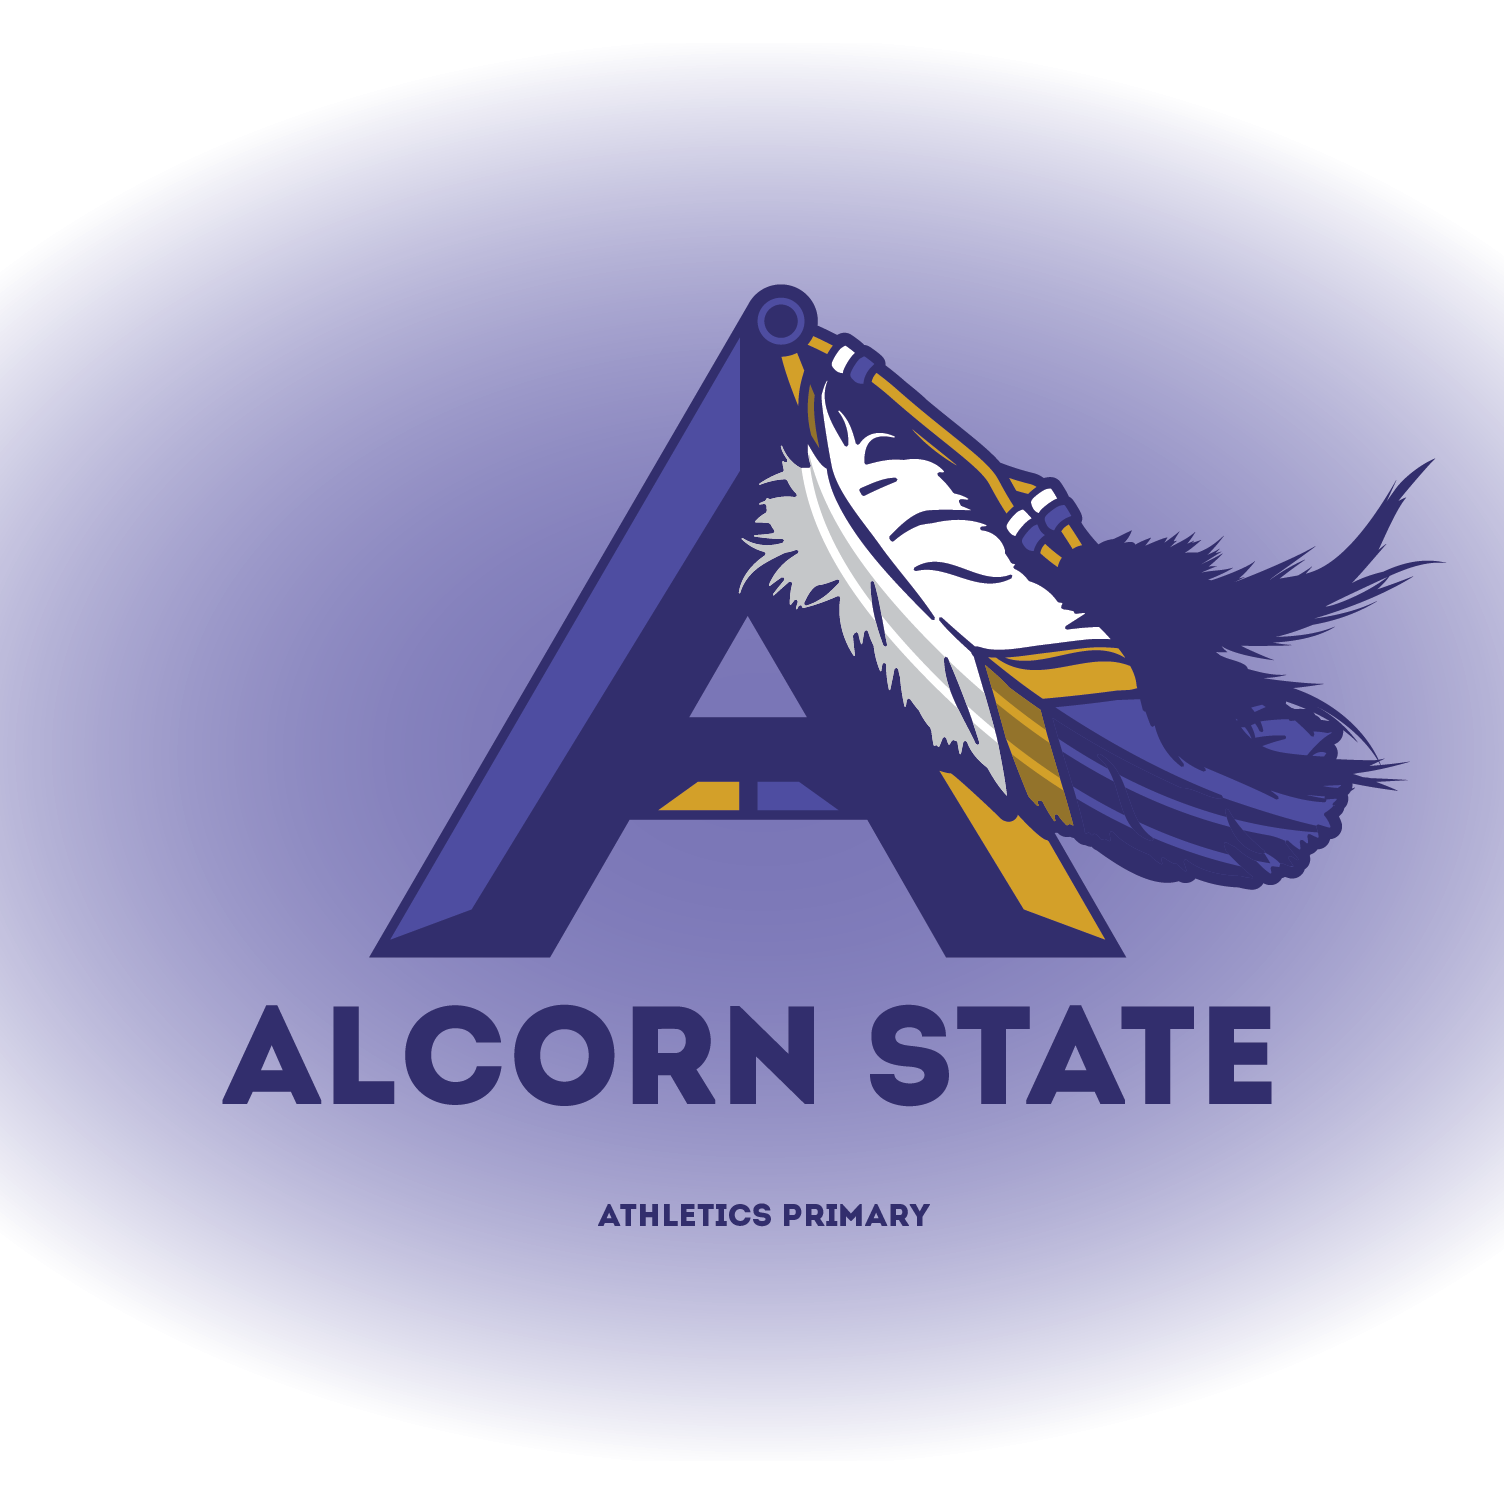 Alcorn State University Rebrand Concept This Is A Concept Only And Is Not Affiliated With Alcorn State University In Any Way University Logo States Rebranding